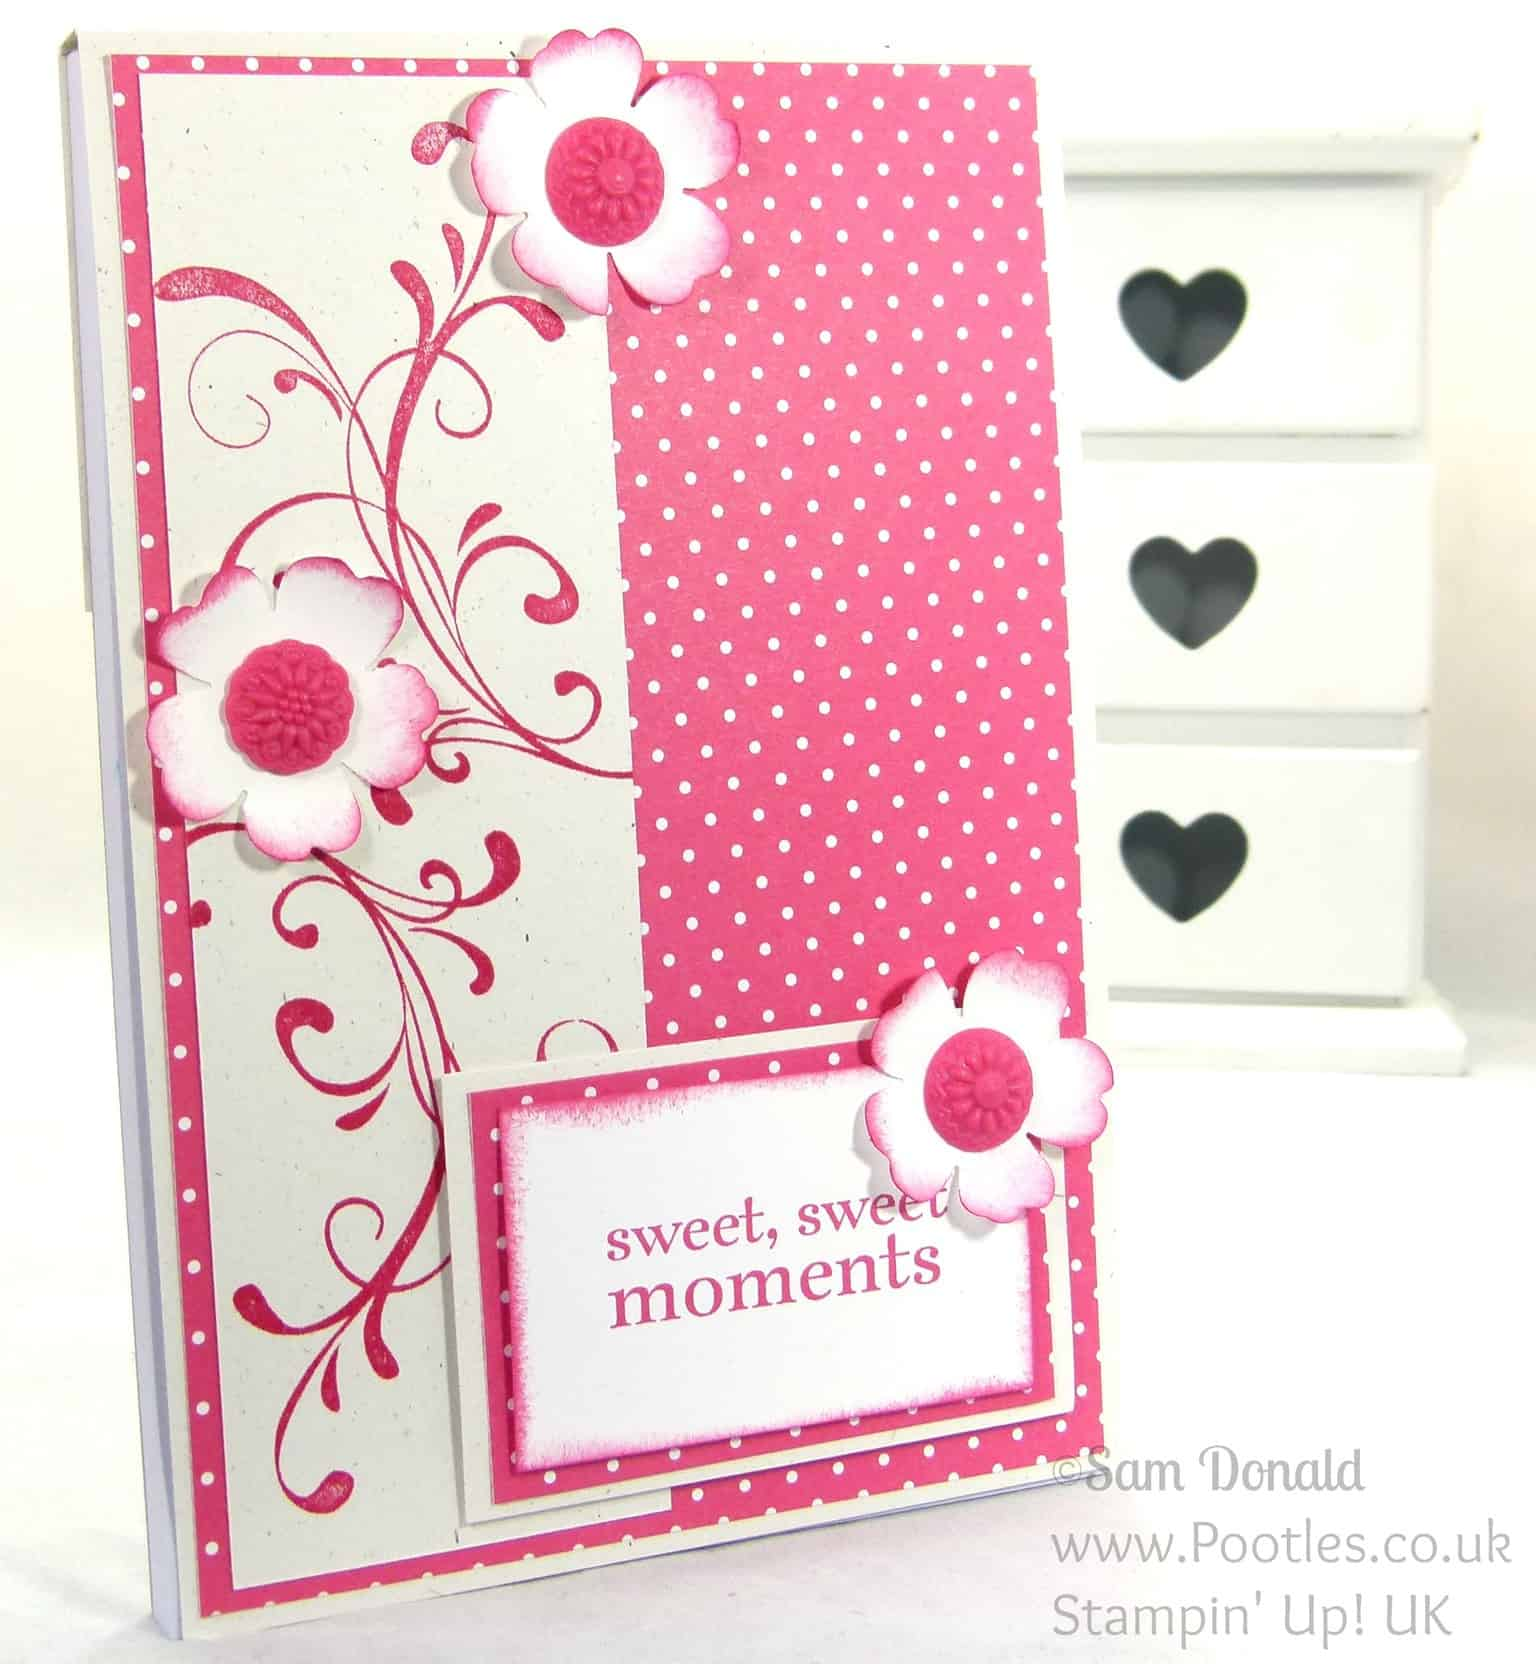 Pootles - Gifts for my new Stampin' Up! UK Demonstrators!